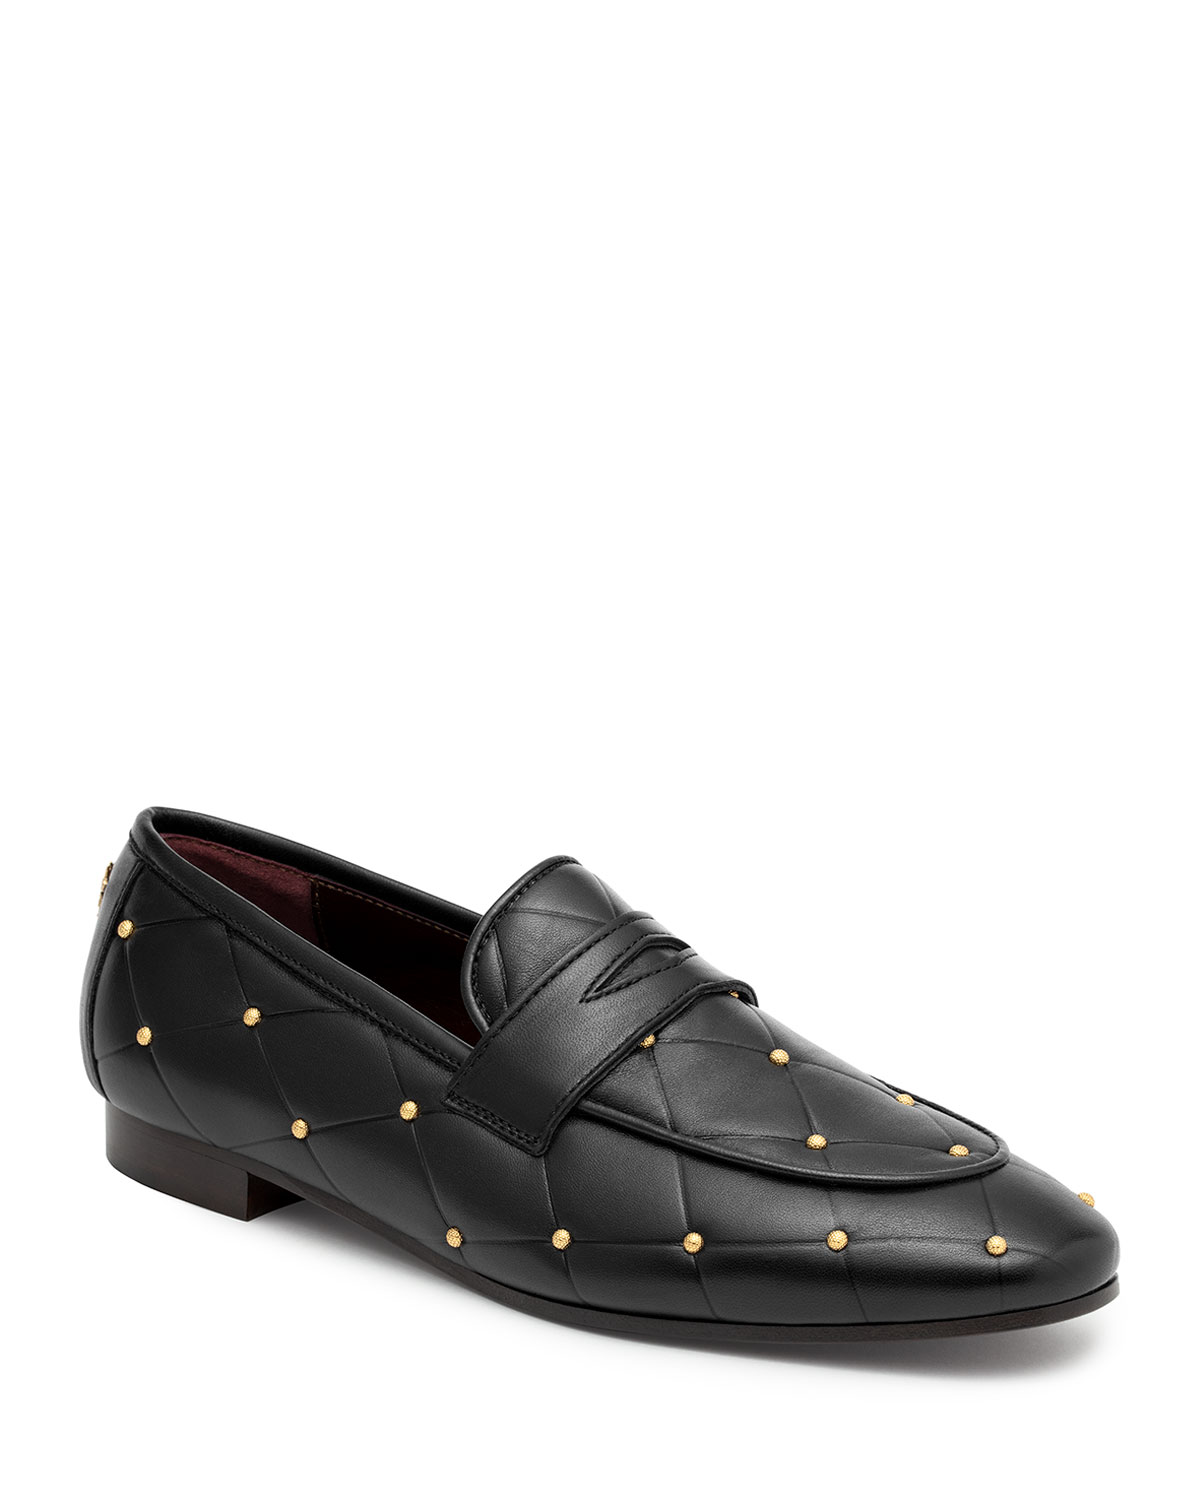 Bougeotte Flaneur Quilted Stud Flat Penny Loafers